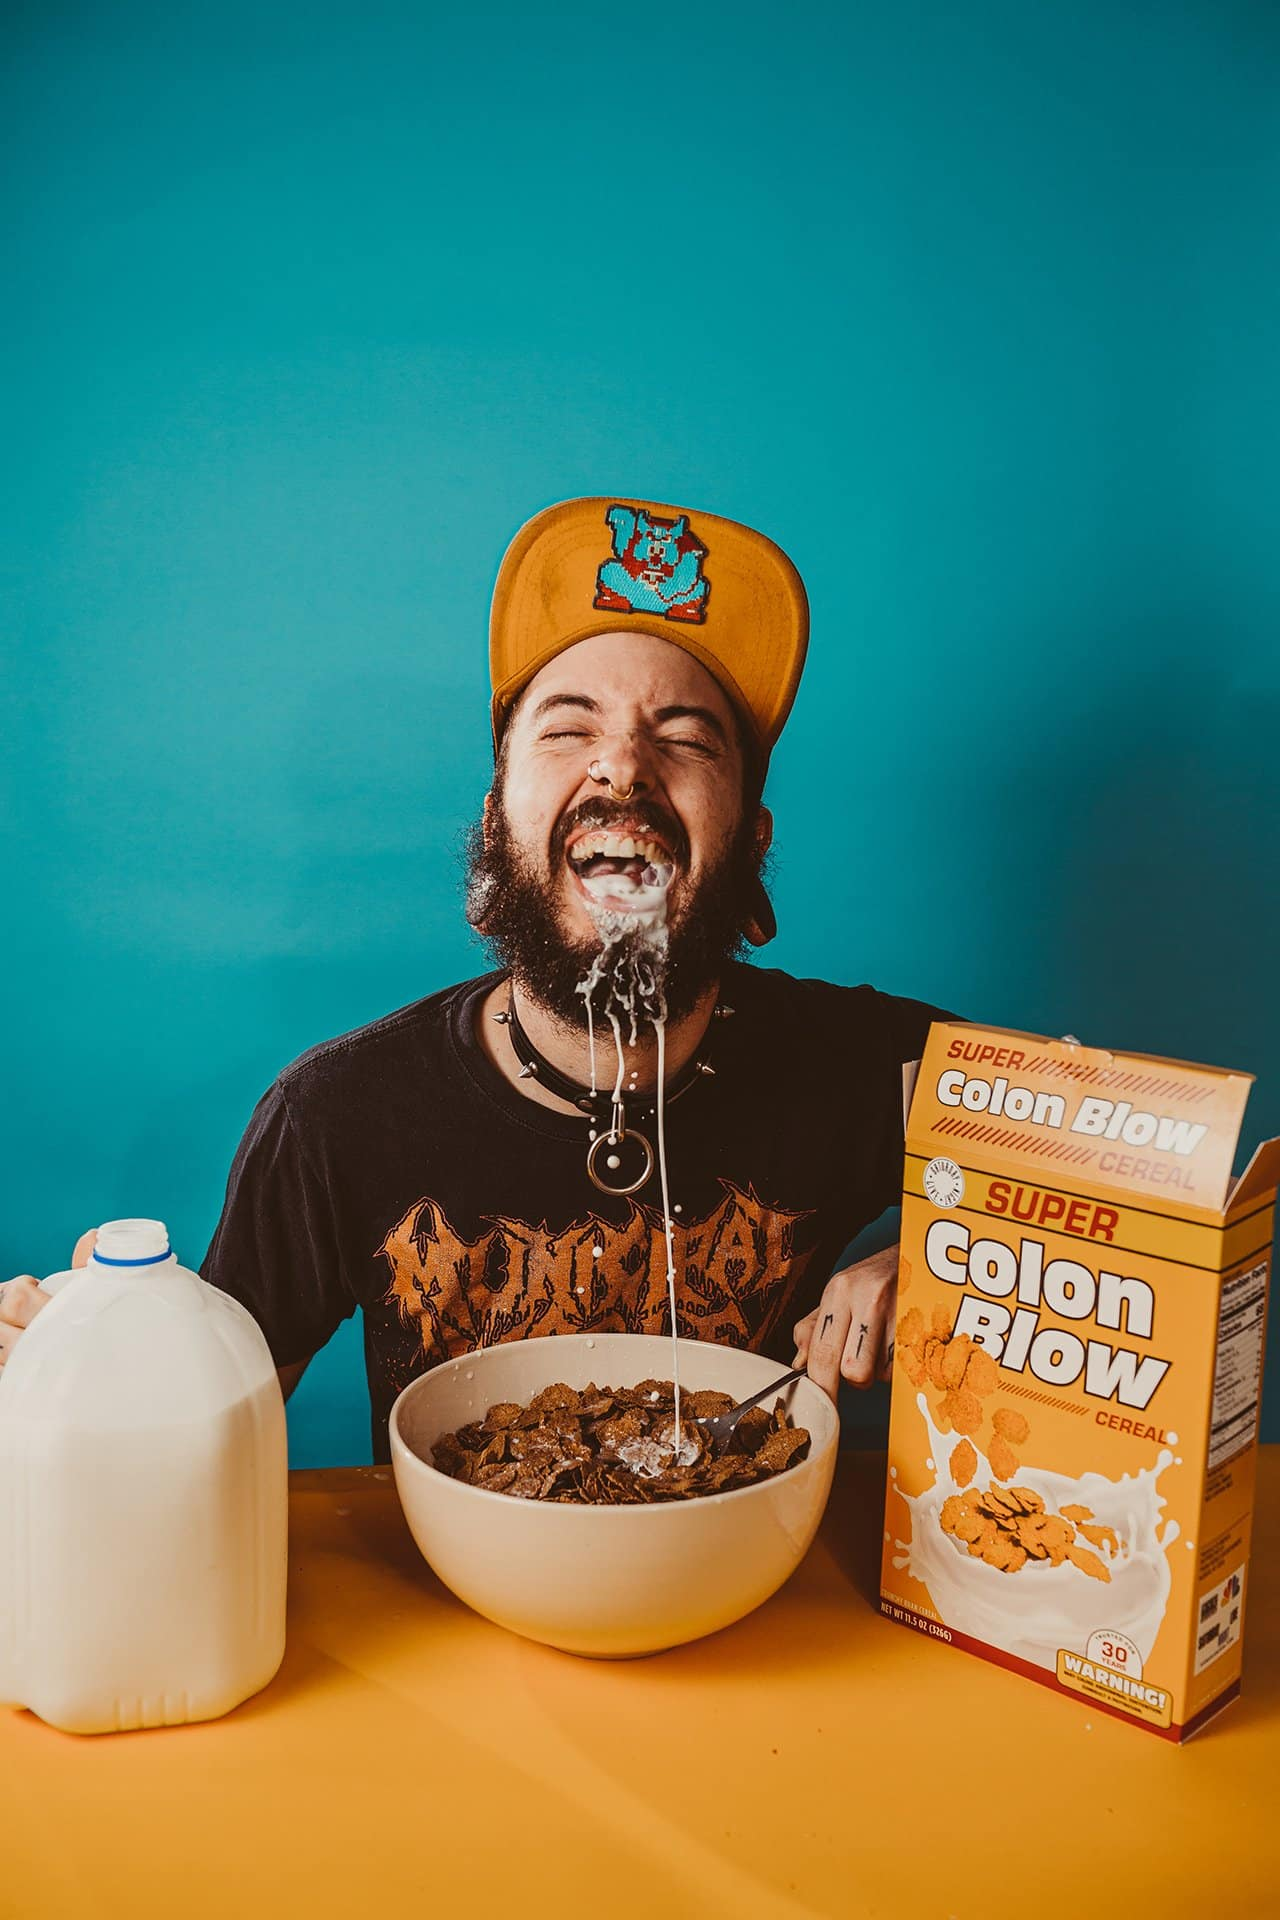 rapper Duke Stamina eating cereal with teal and yellow colors